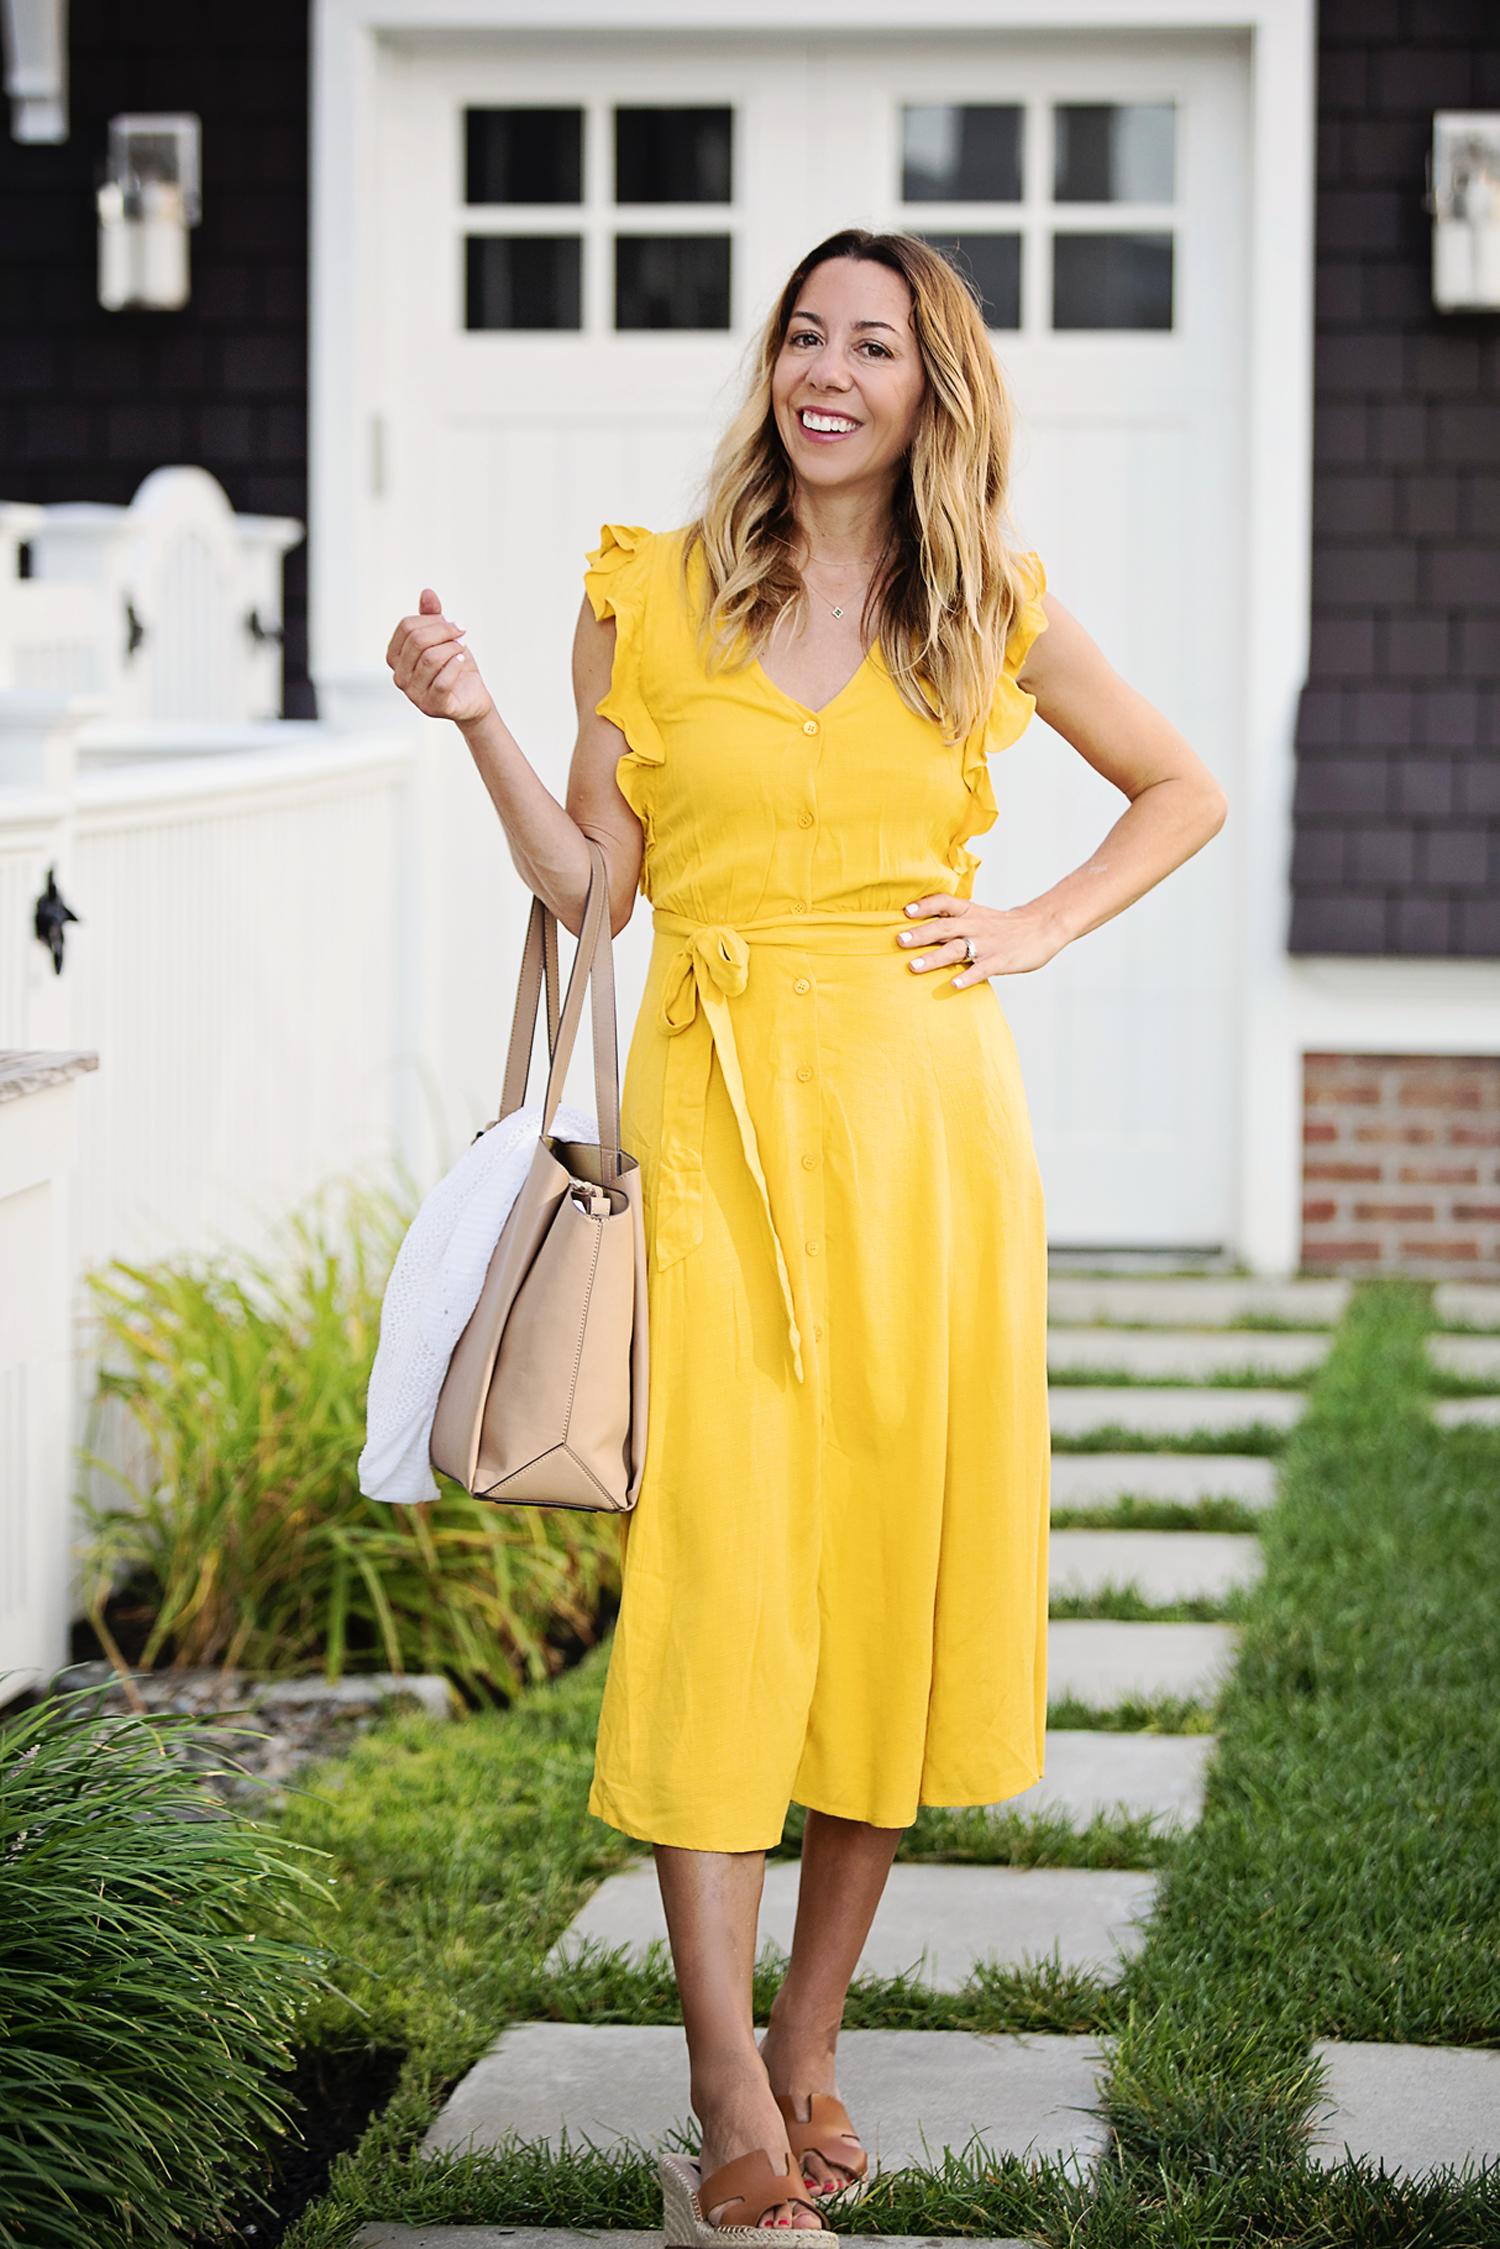 The motherchic wearing yellow 1.state dress from macy's